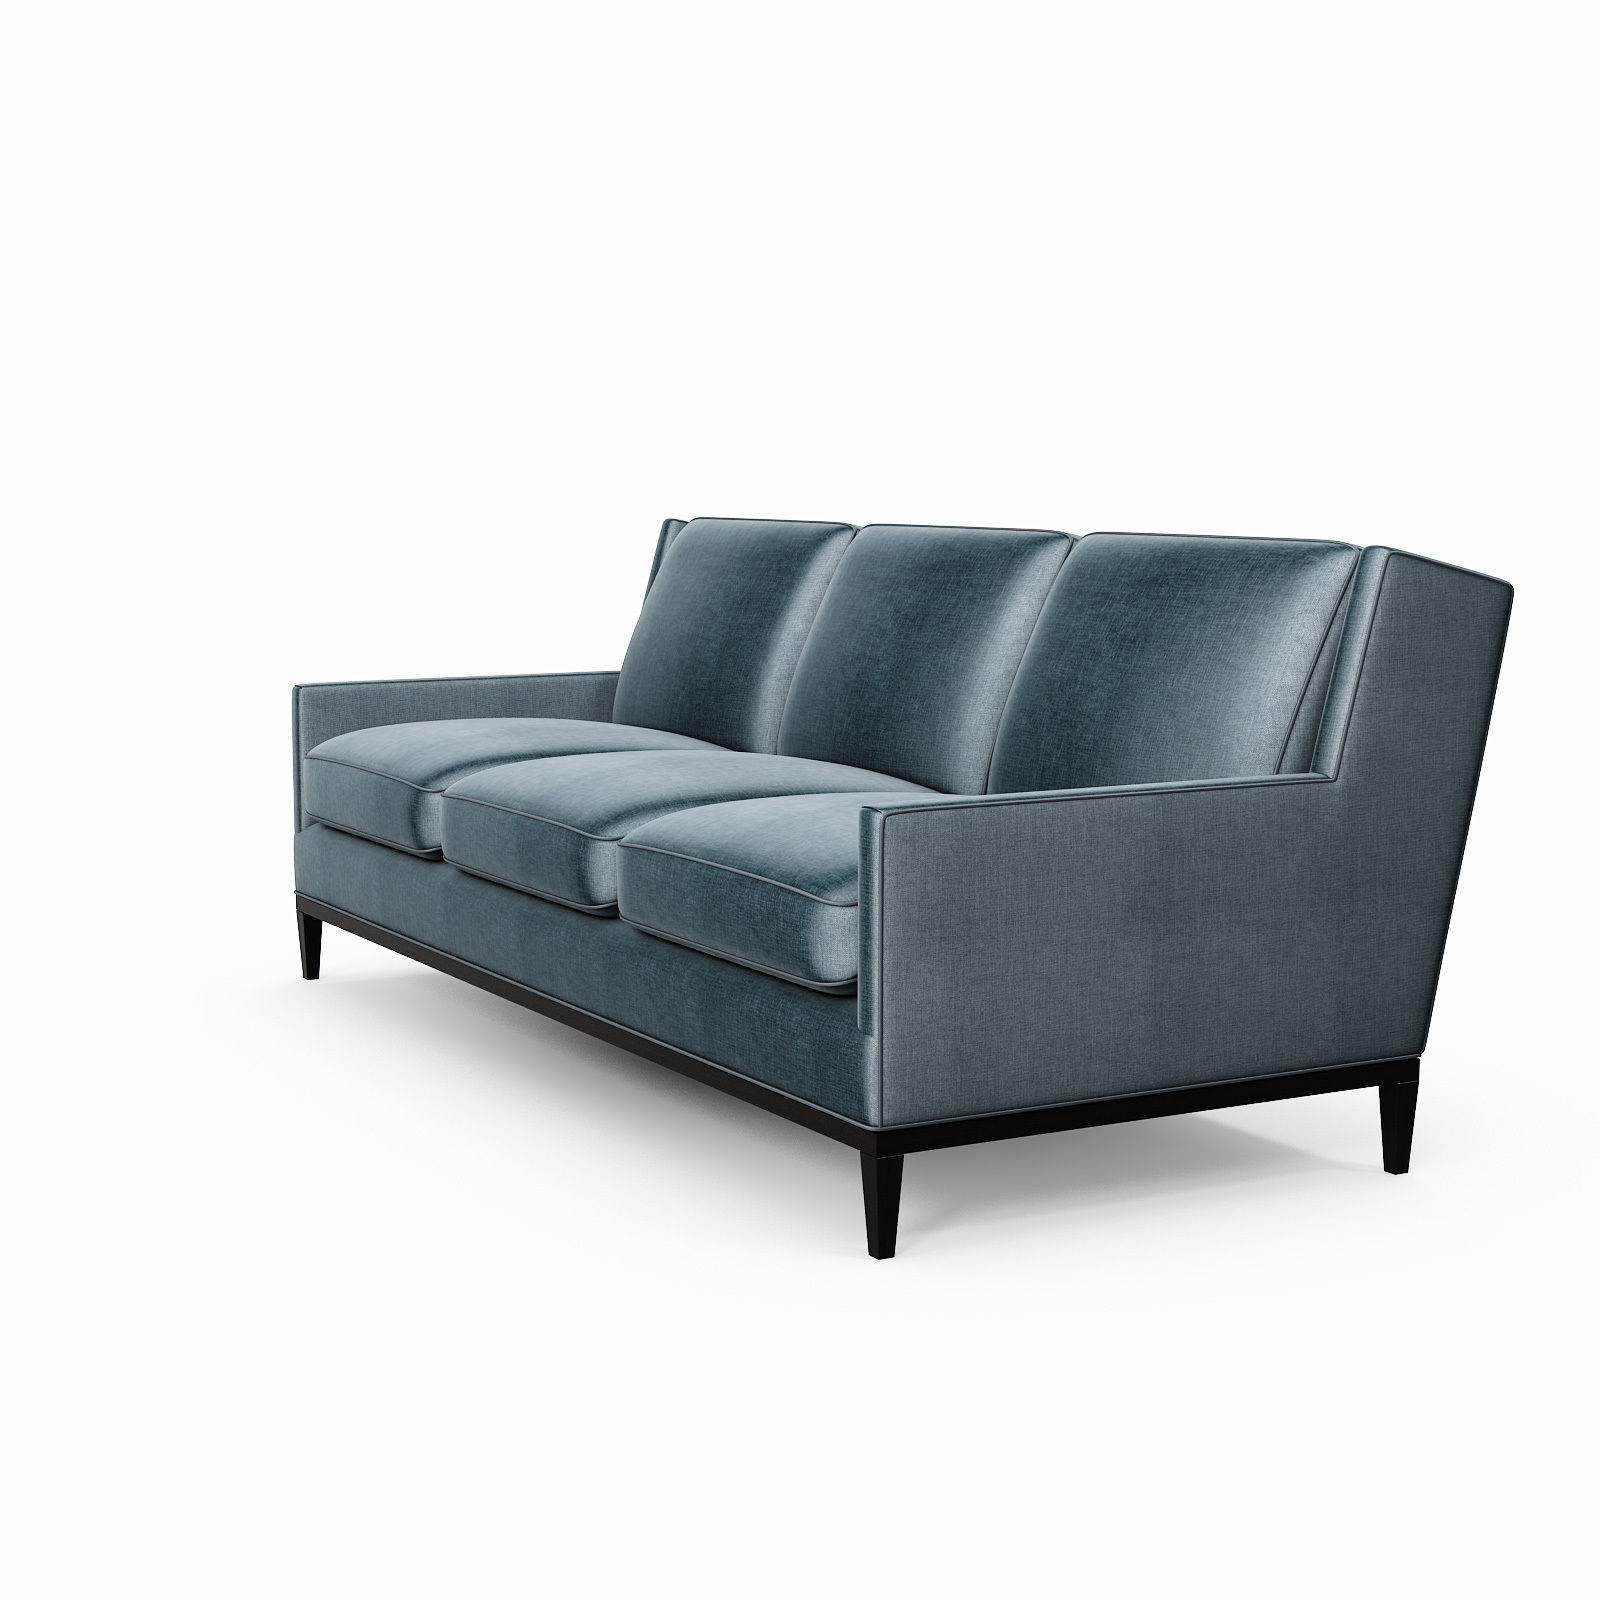 a rudin sofa 2859 havertys sleeper reviews 47 images airc catosferanet